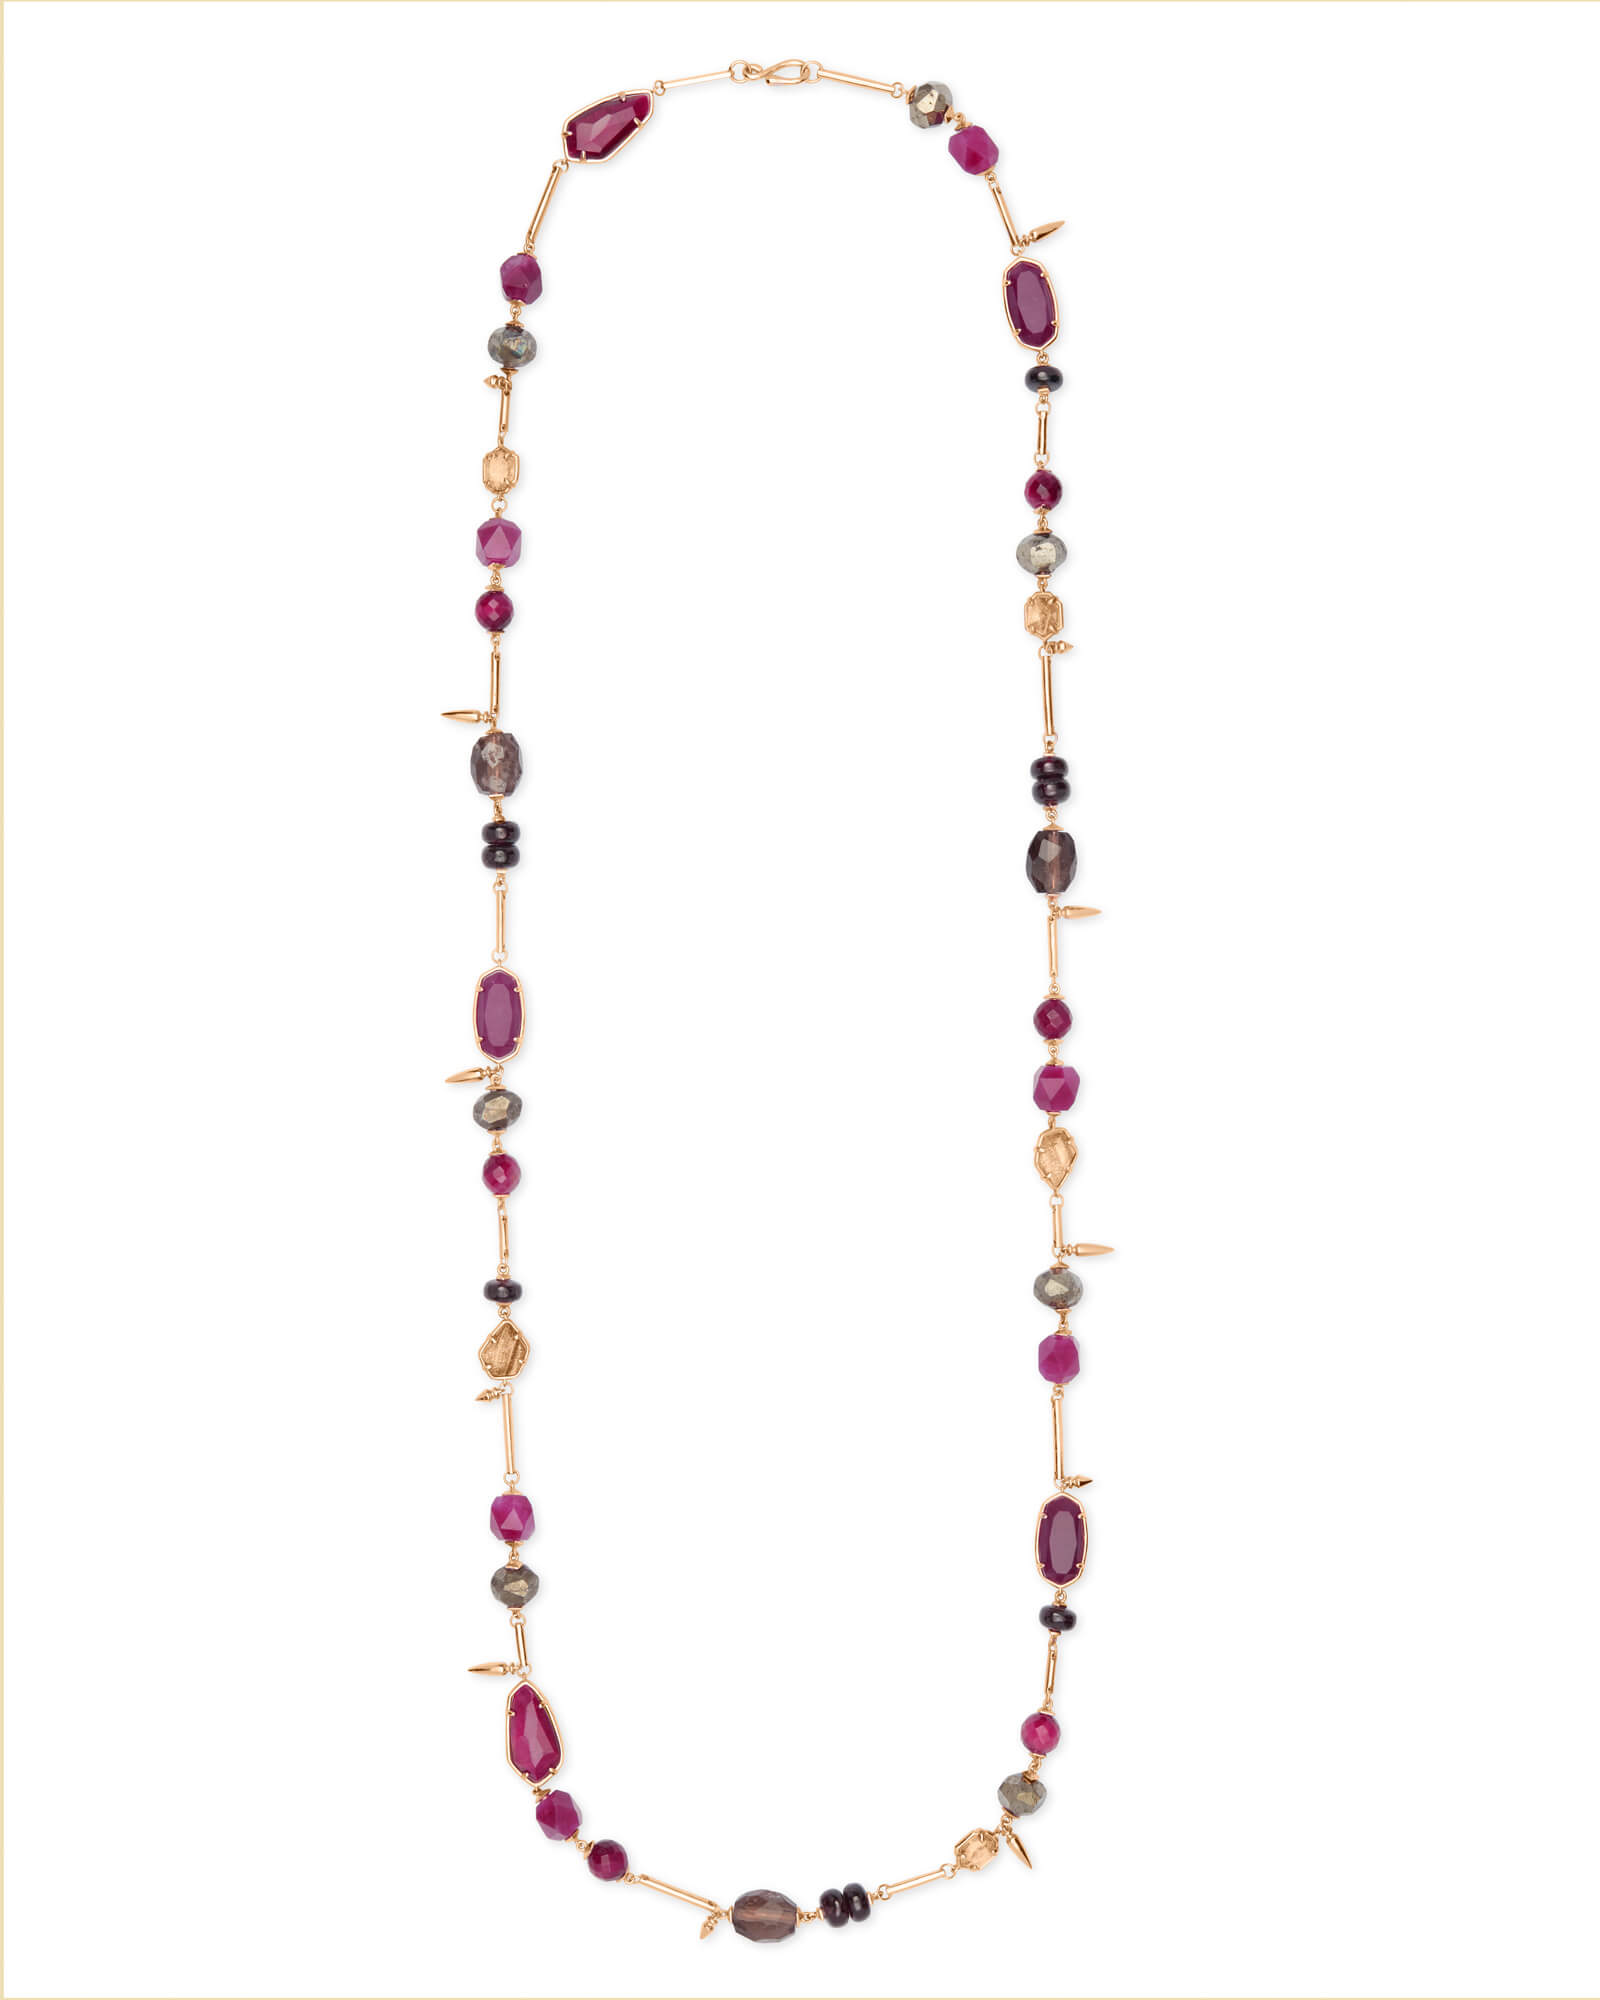 Ruth Rose Gold Long Necklace In Maroon Mix